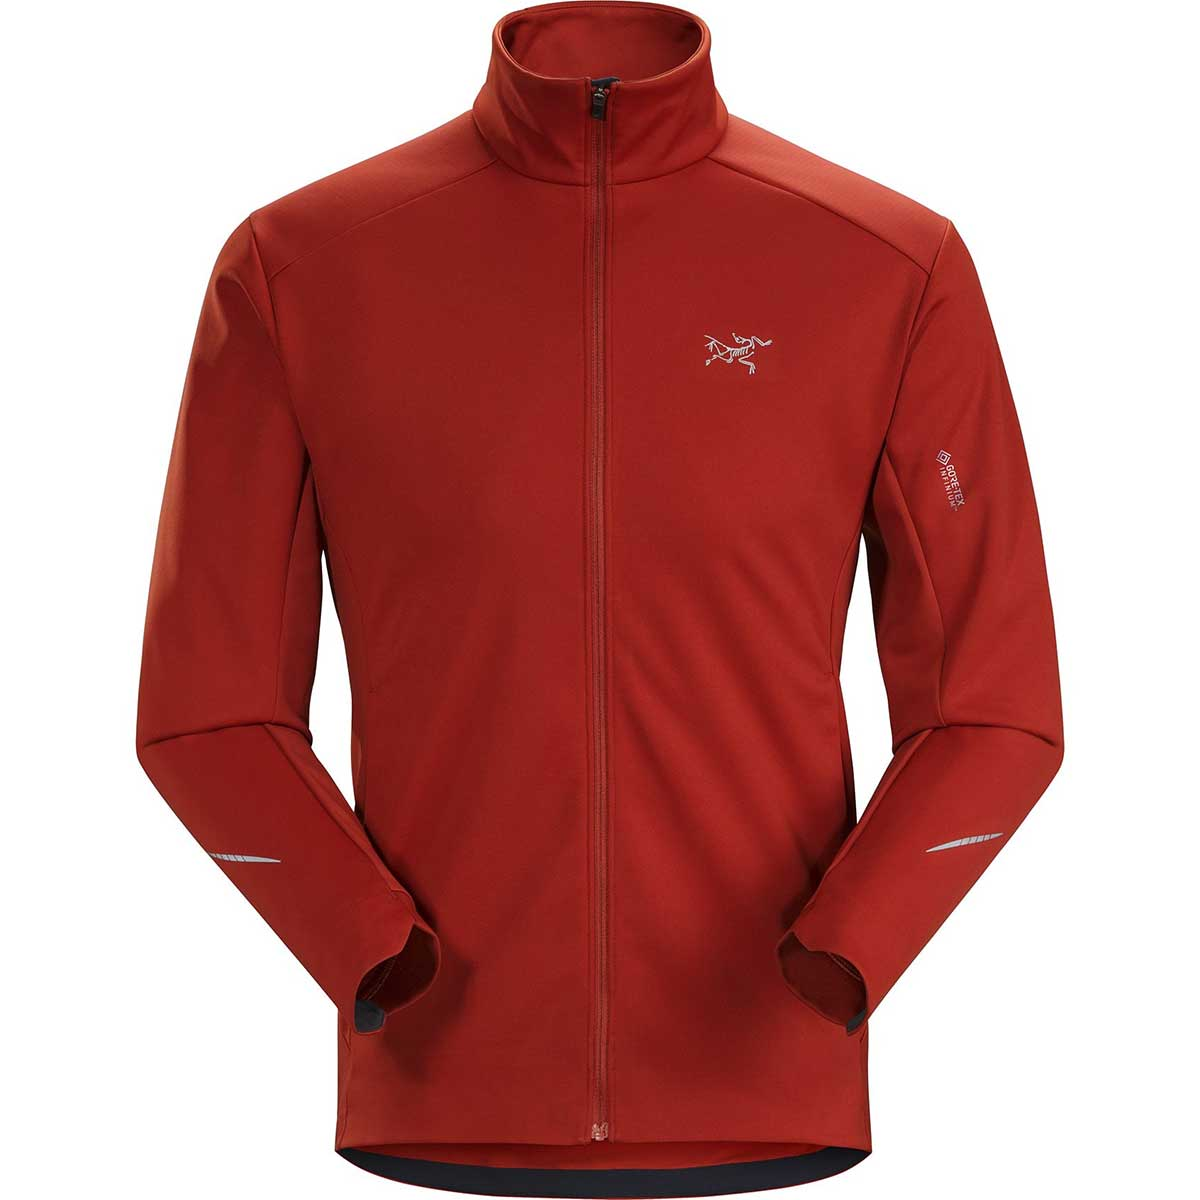 Arcteryx men's Trino Jacket in Infrared front view